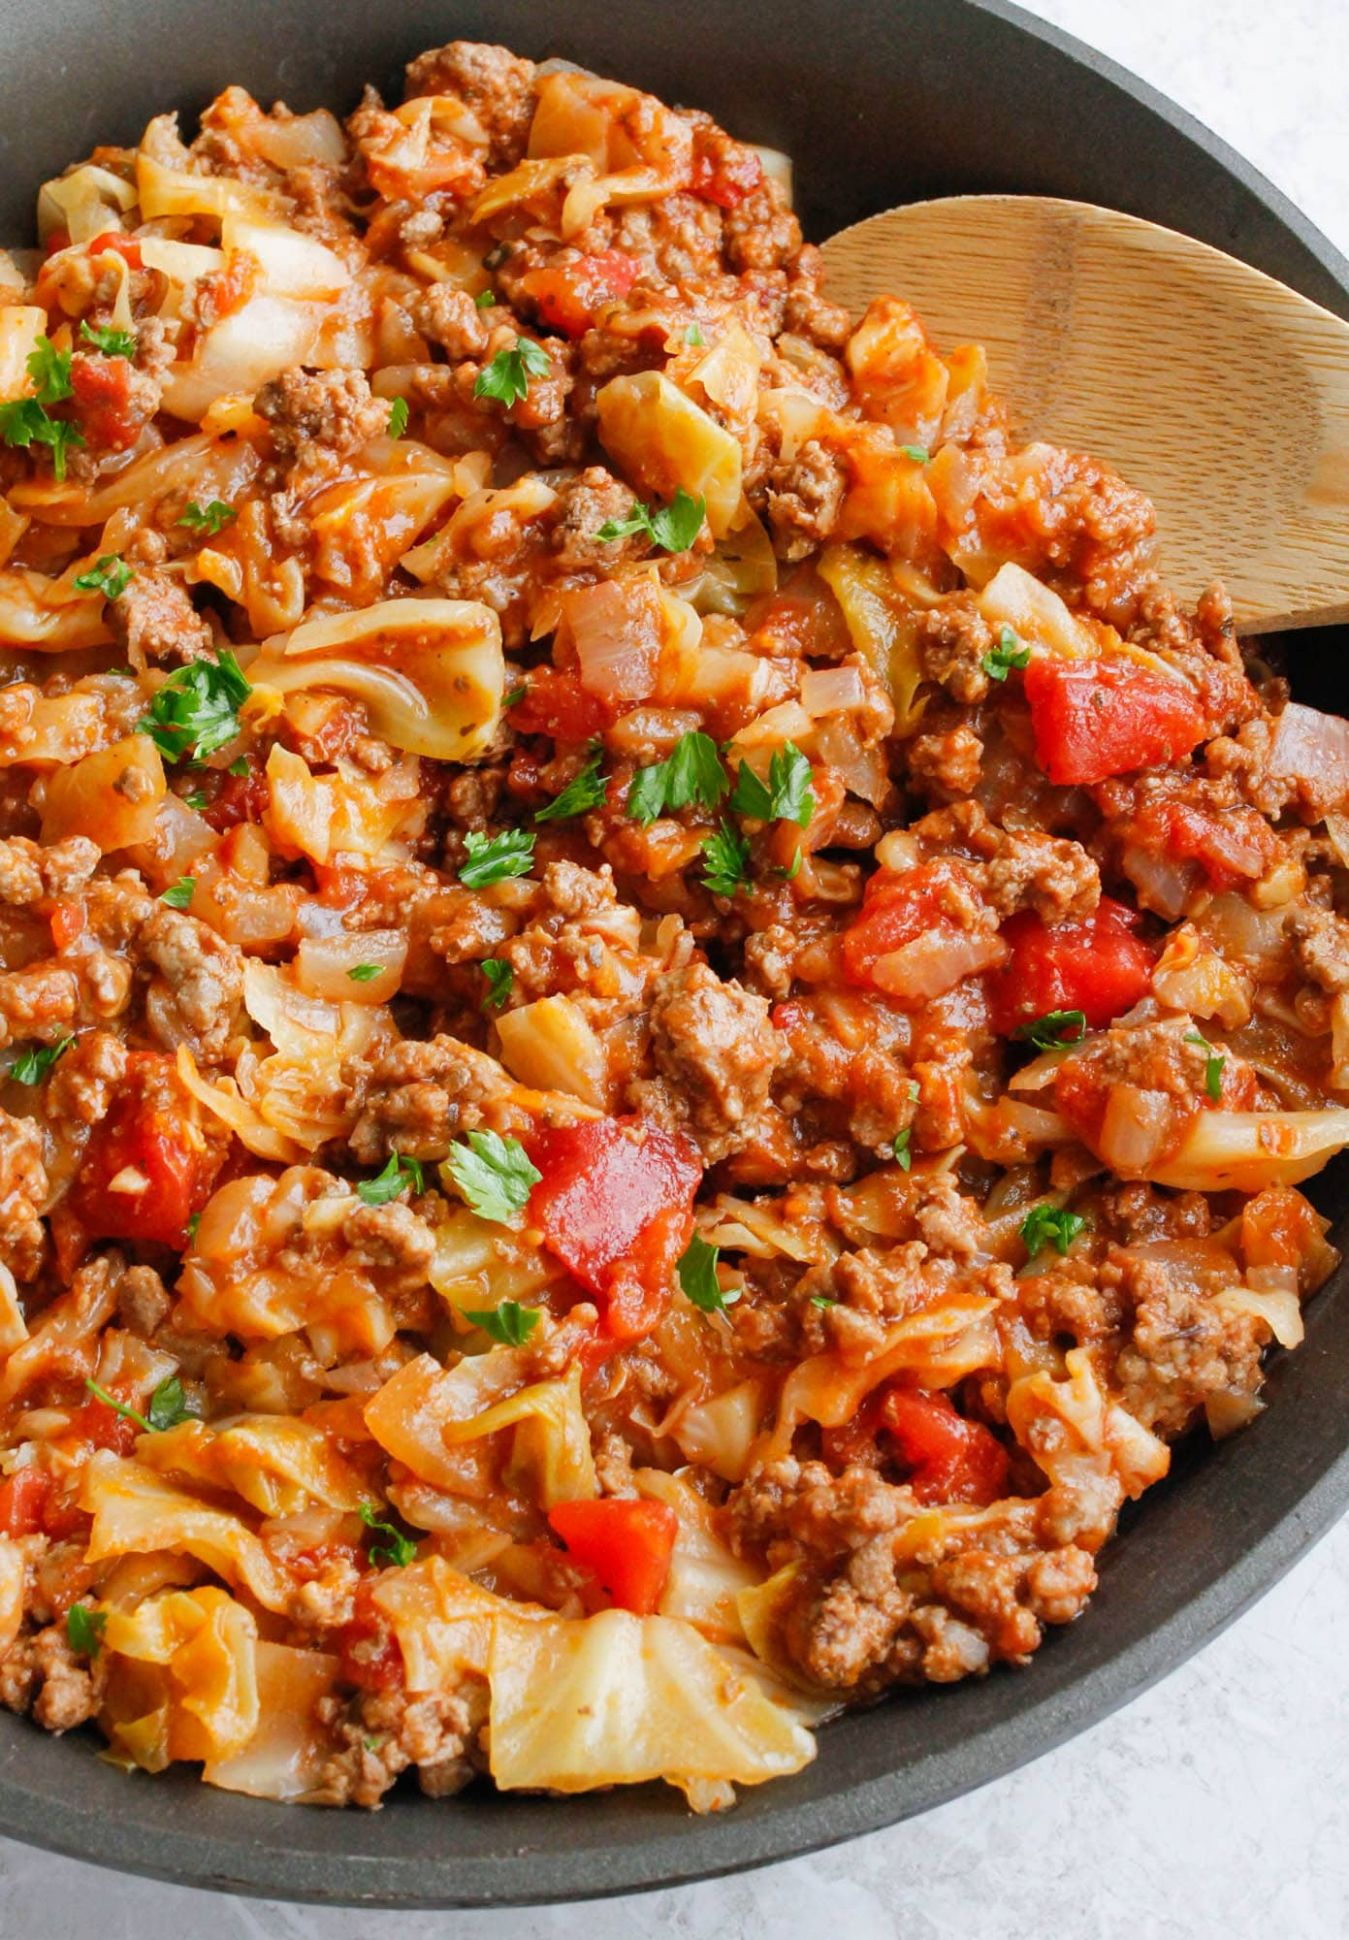 Amish One-Pan Ground Beef and Cabbage Skillet - Recipes Beef And Cabbage